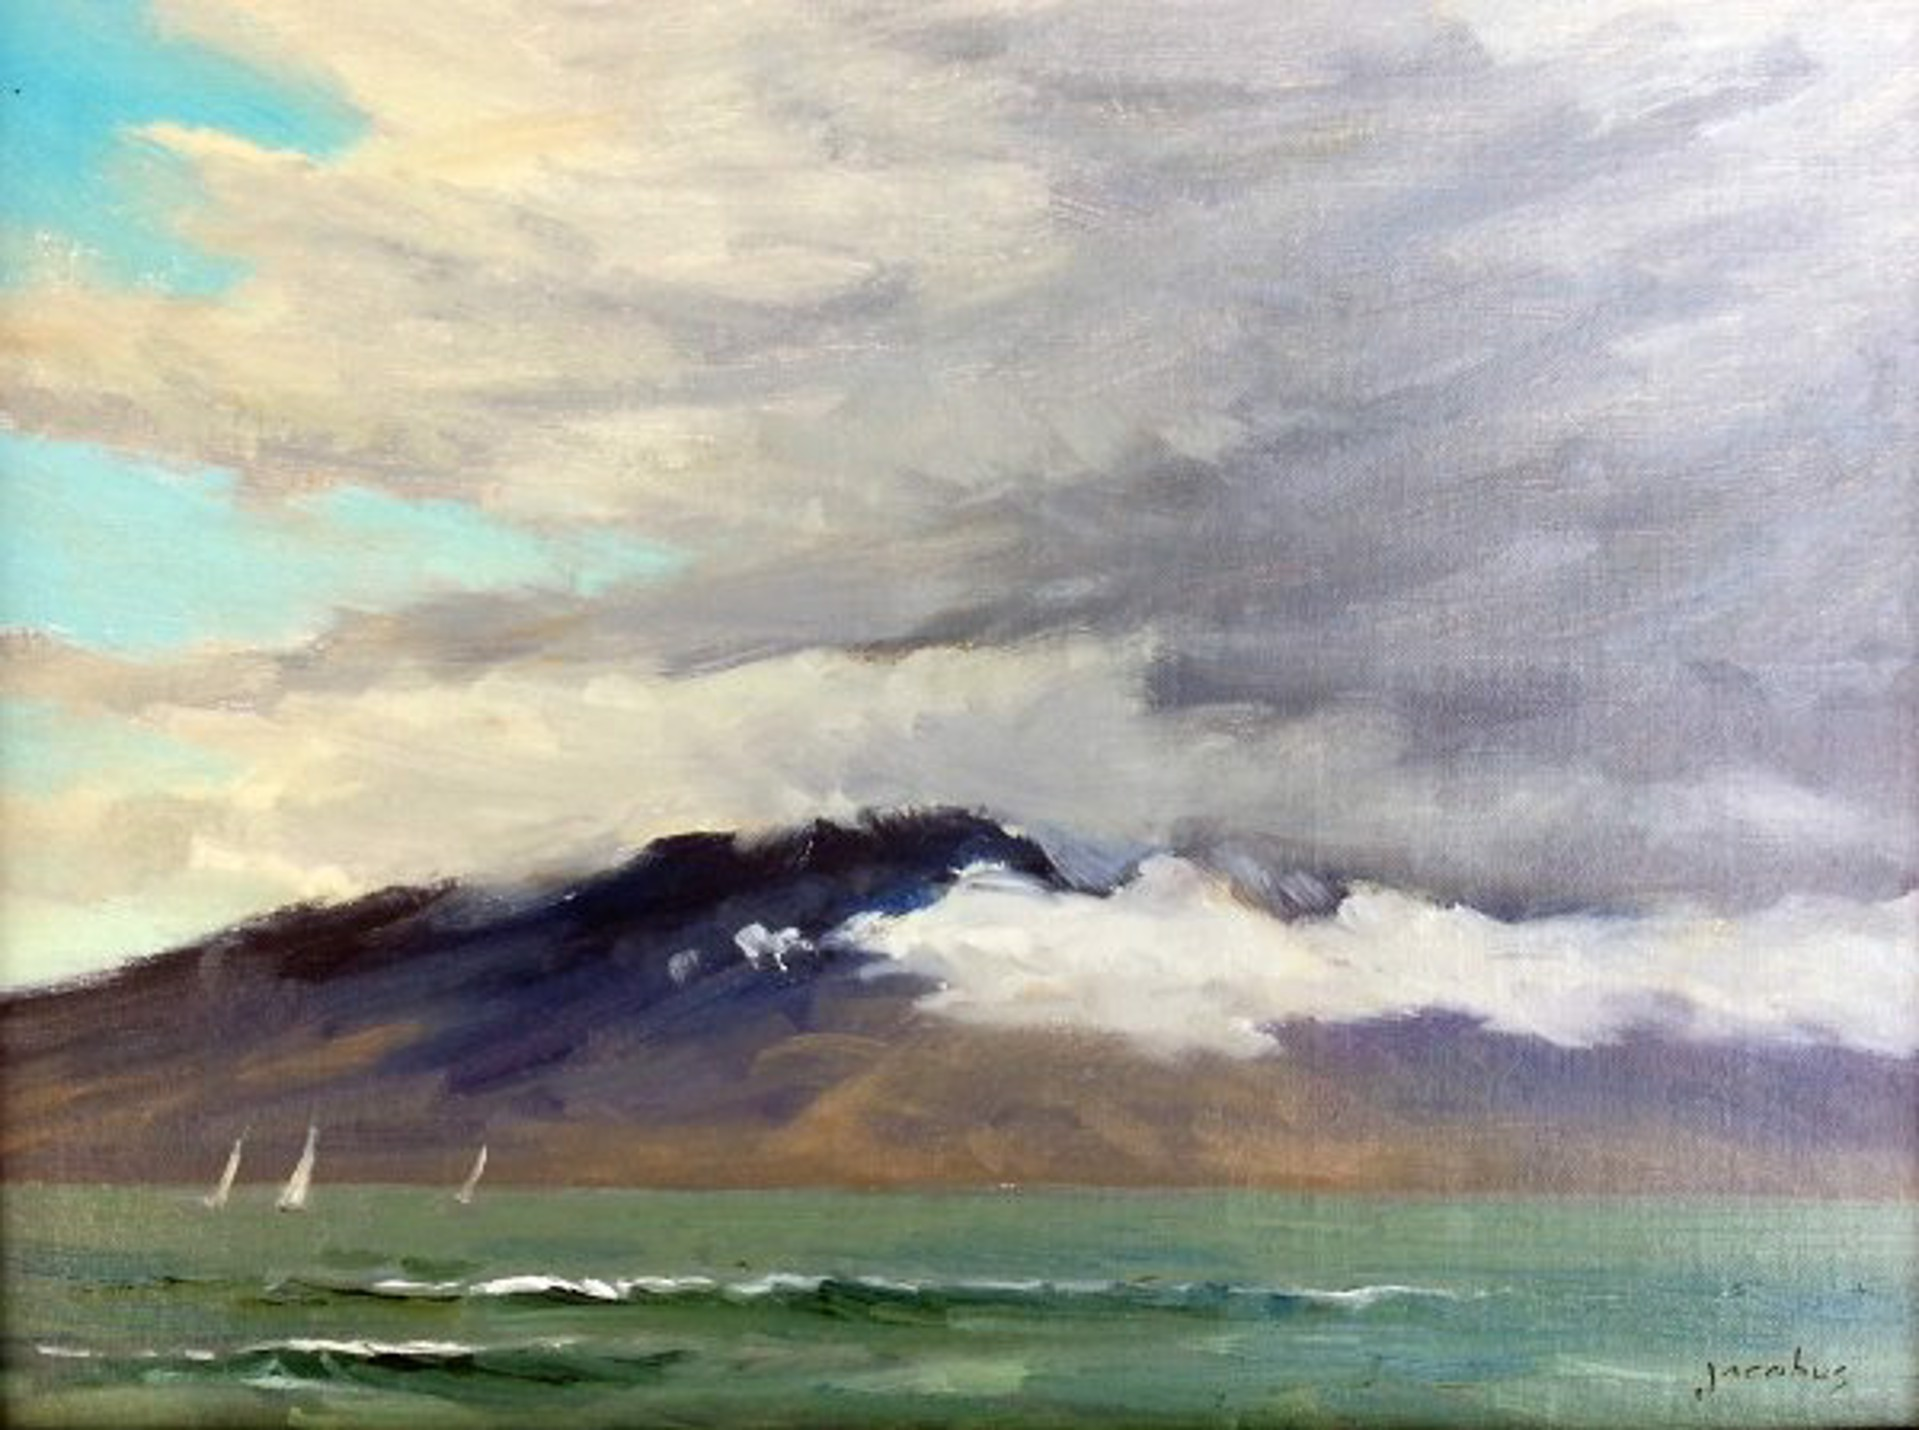 Clouds Over Lanai by Jacobus Baas